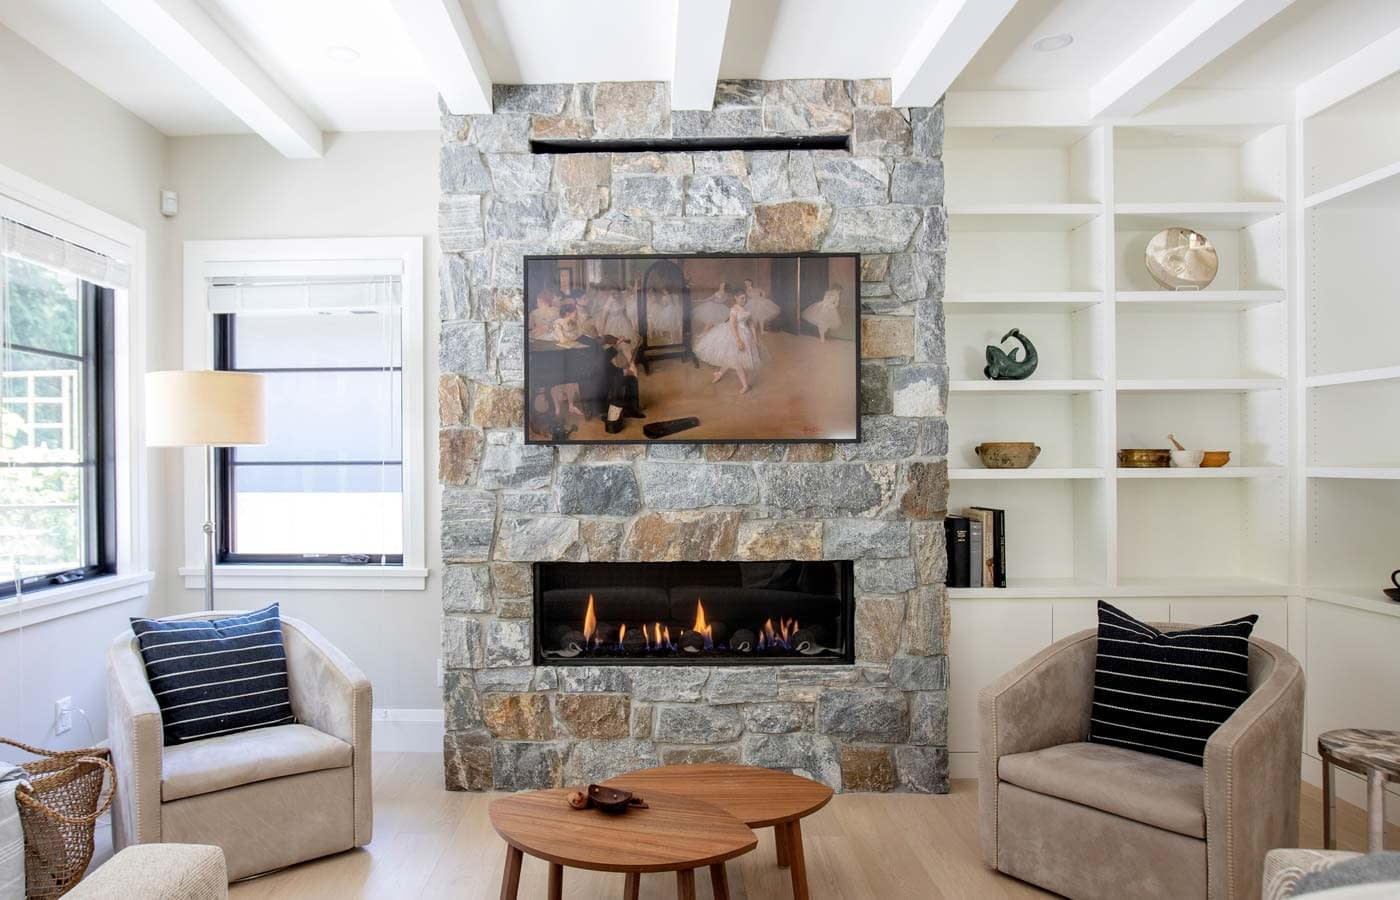 North Shore Fireplace Home Renovation